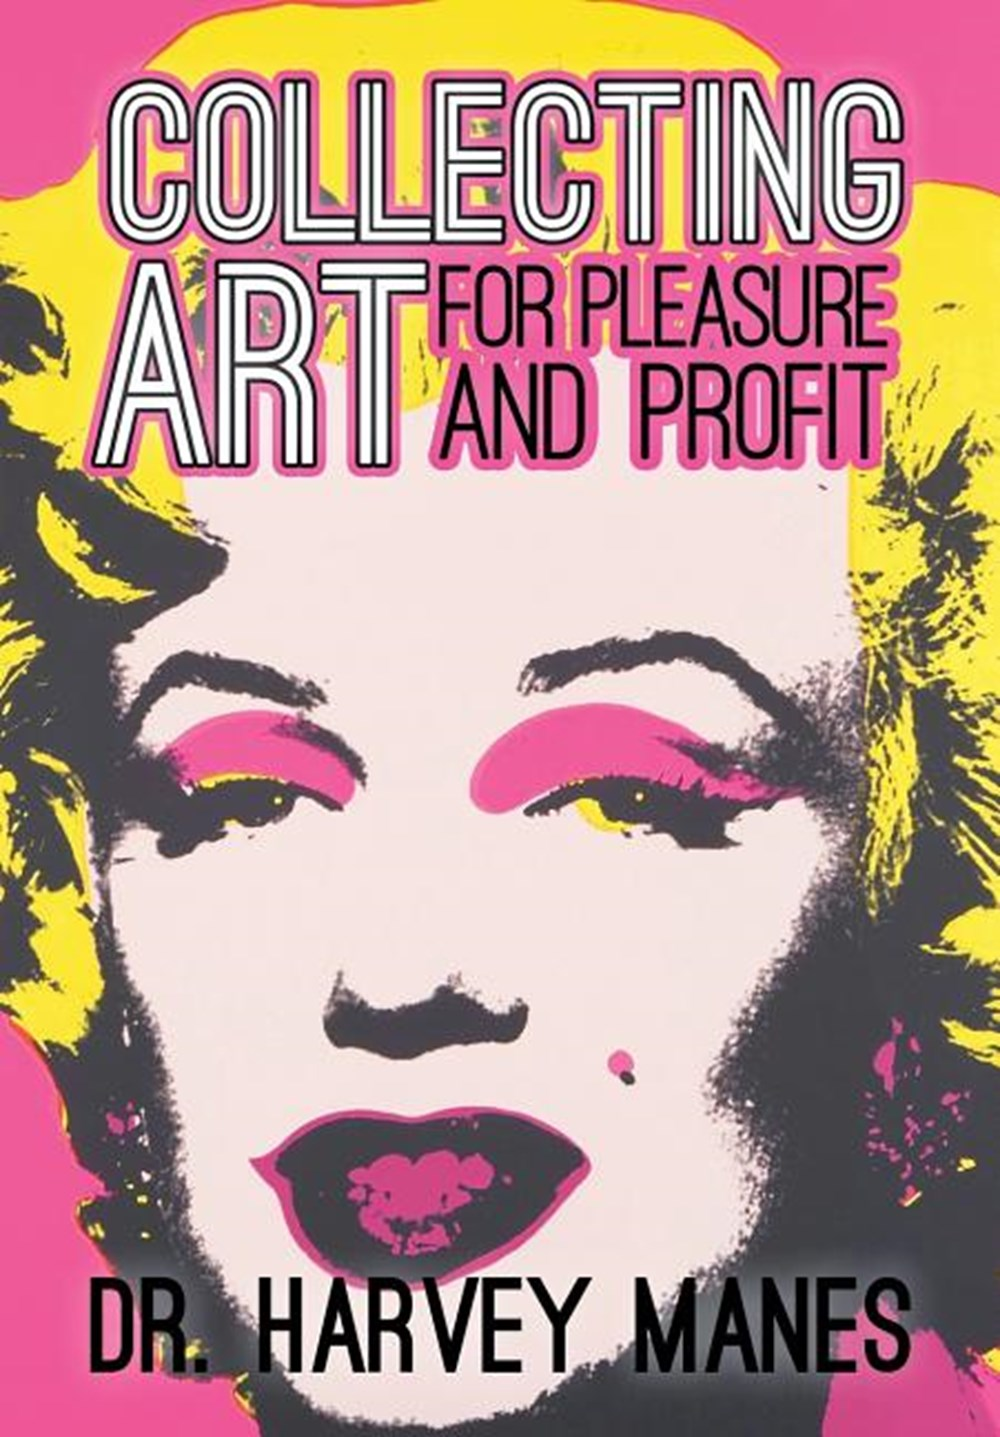 Collecting Art For Pleasure and Profit